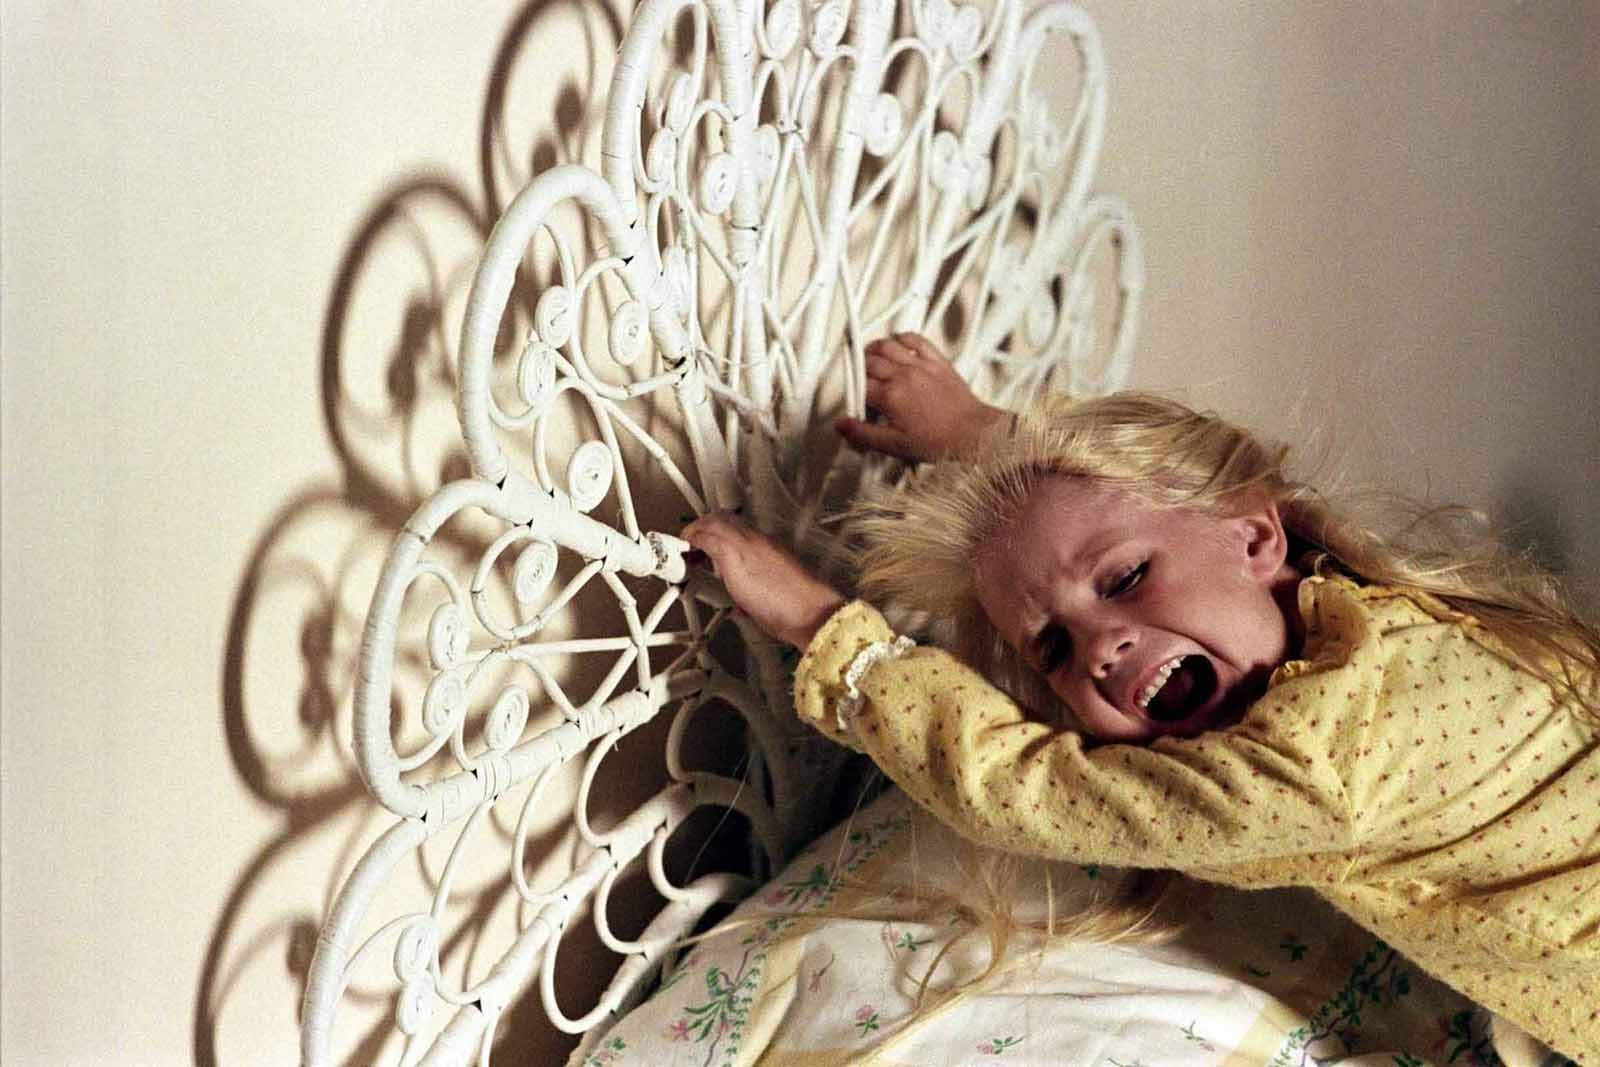 While the family in 'Poltergeist' was most definitely cursed, many fans believe so was the cast of the hit horror film. But why would they think that?